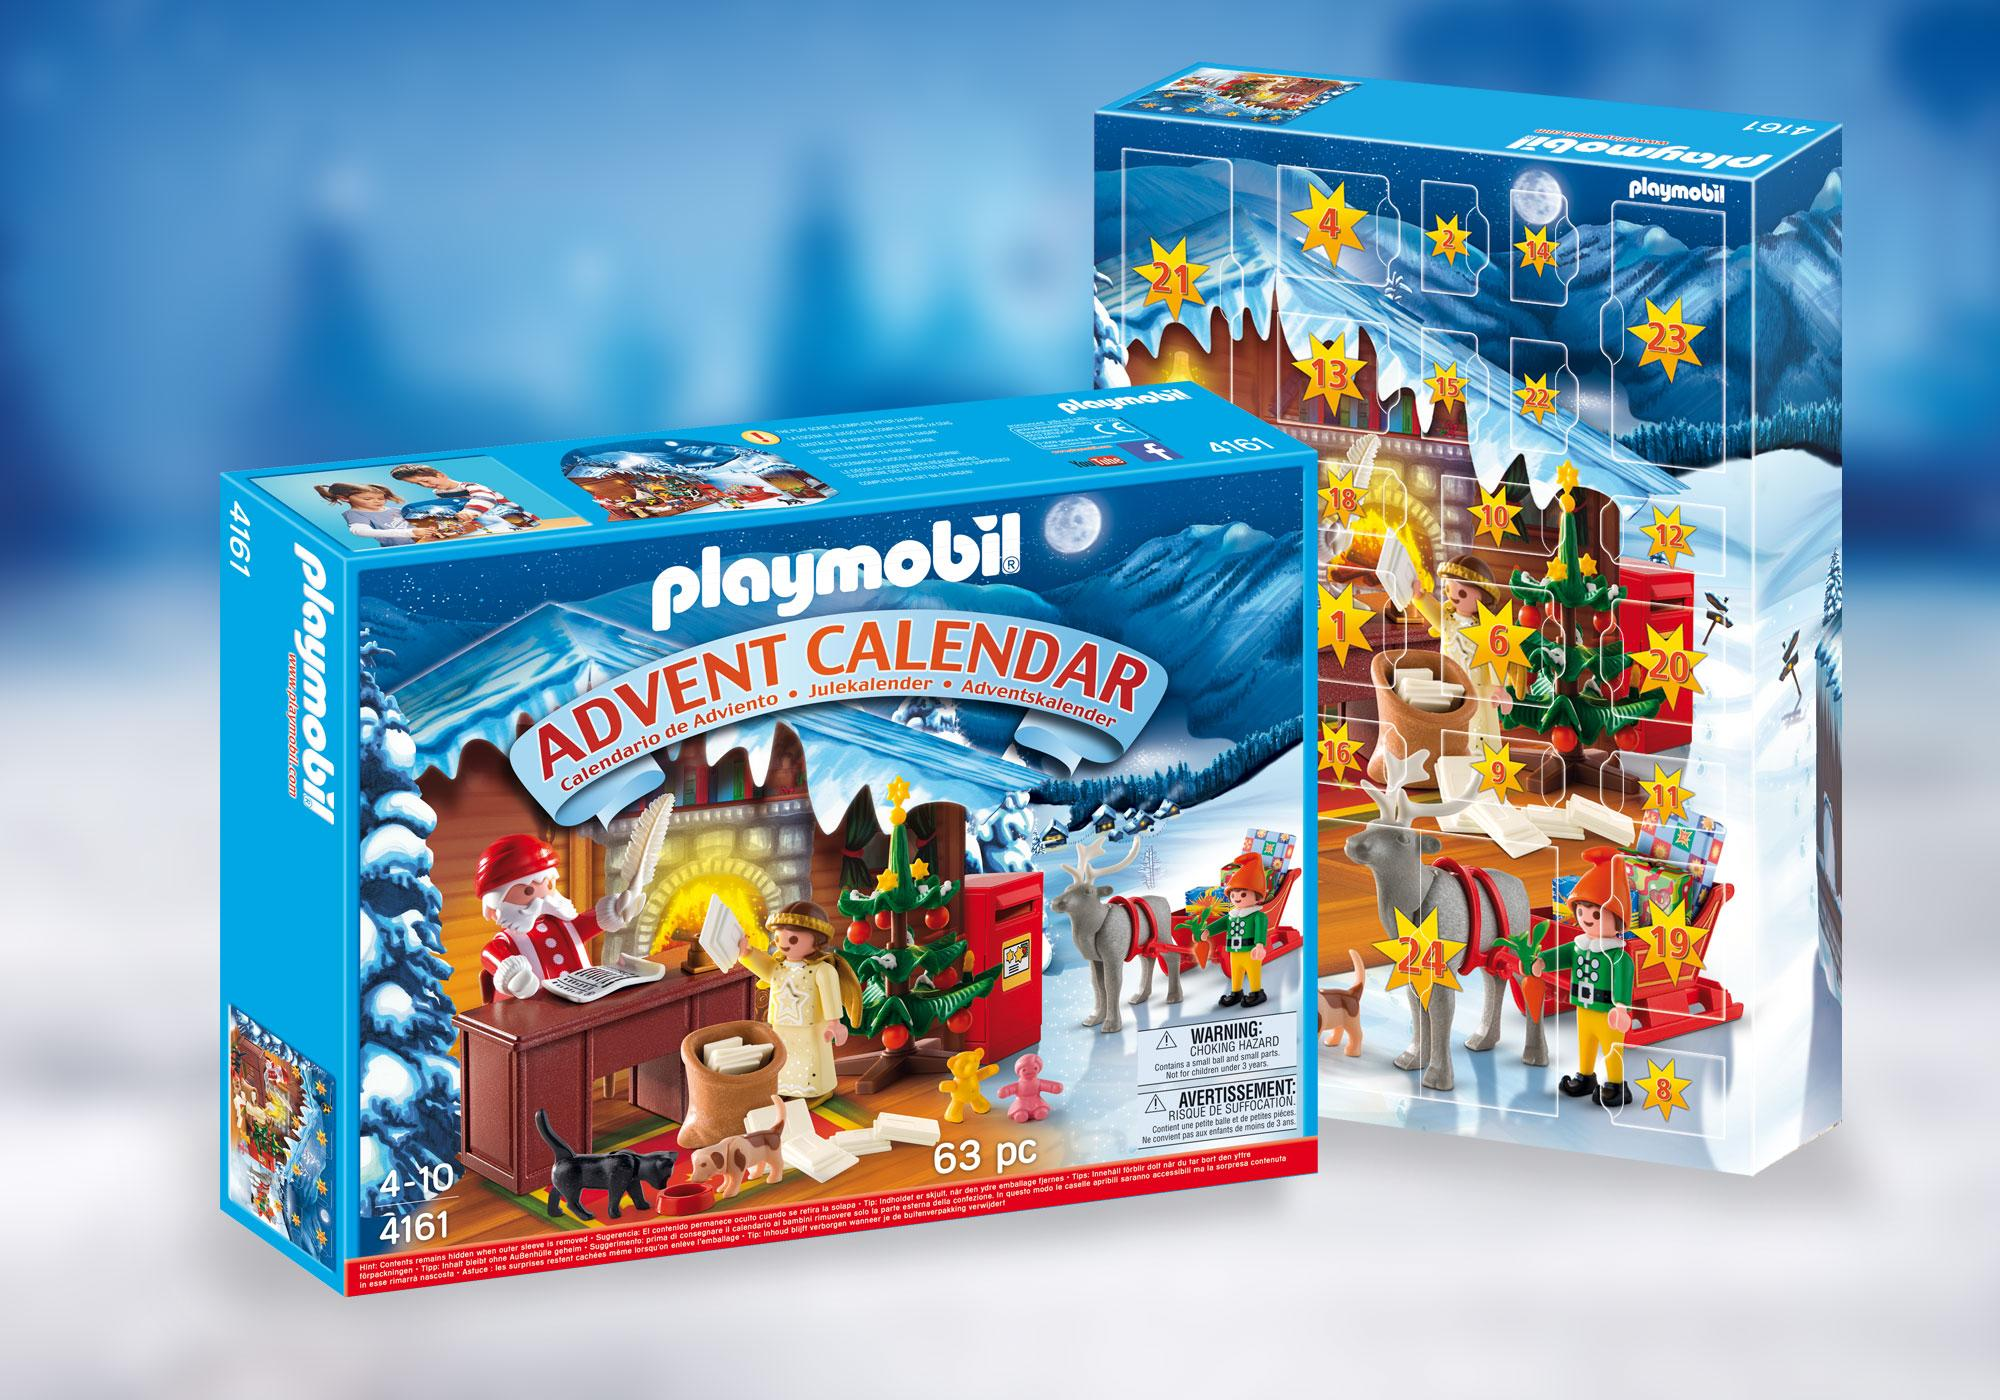 http://media.playmobil.com/i/playmobil/4161_product_detail/Advent Calendar Christmas Post Office